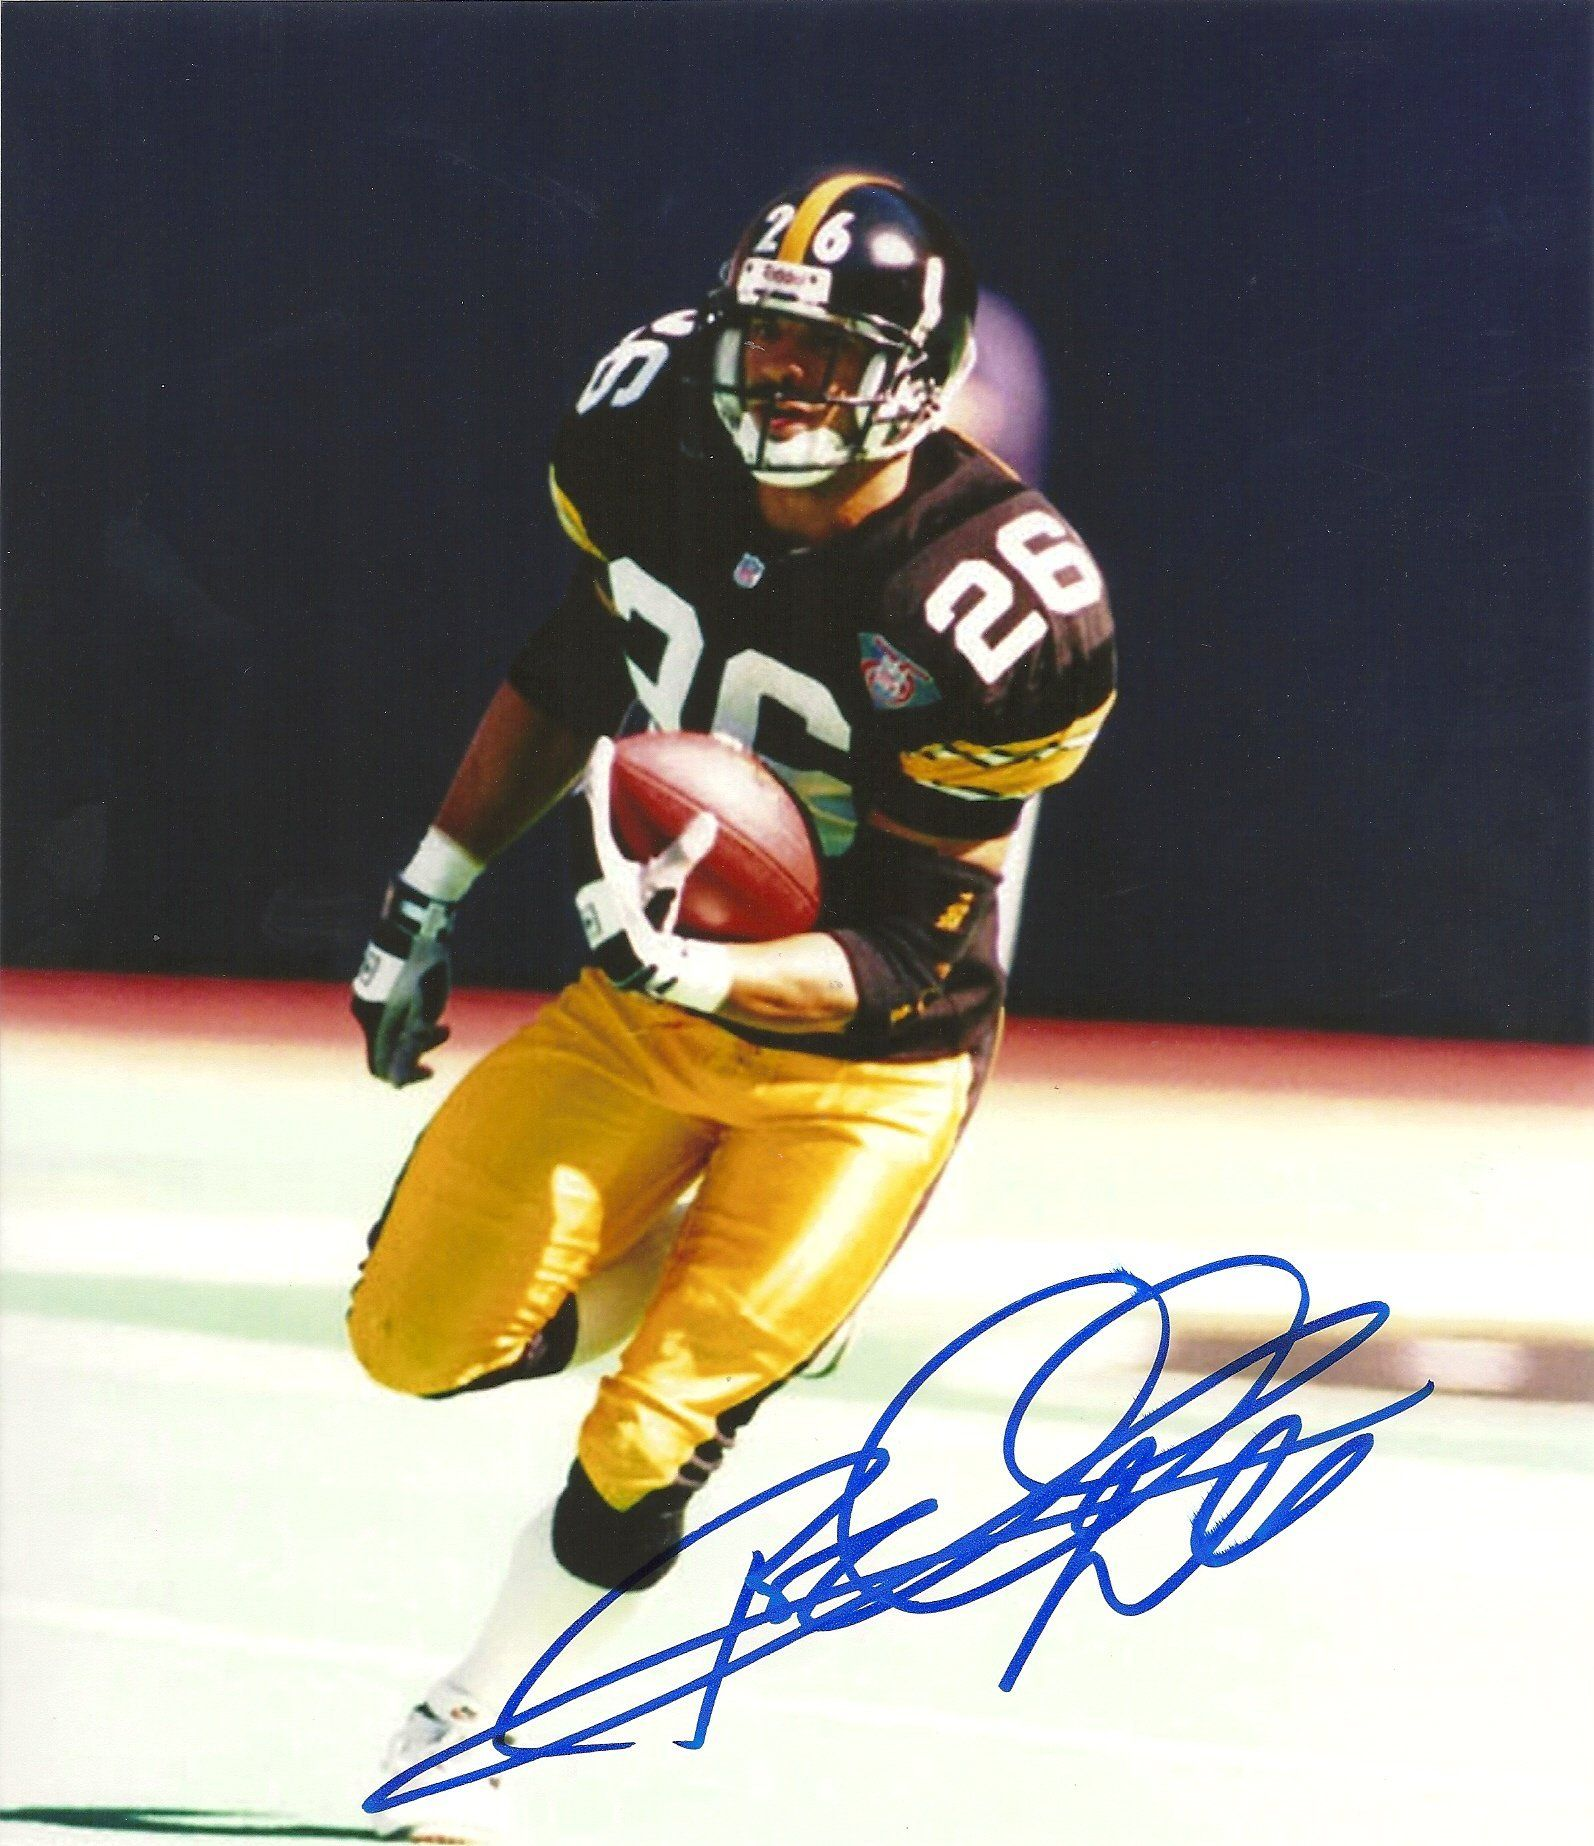 Rod Woodson Rod woodson, Pittsburgh steelers, Steelers sign